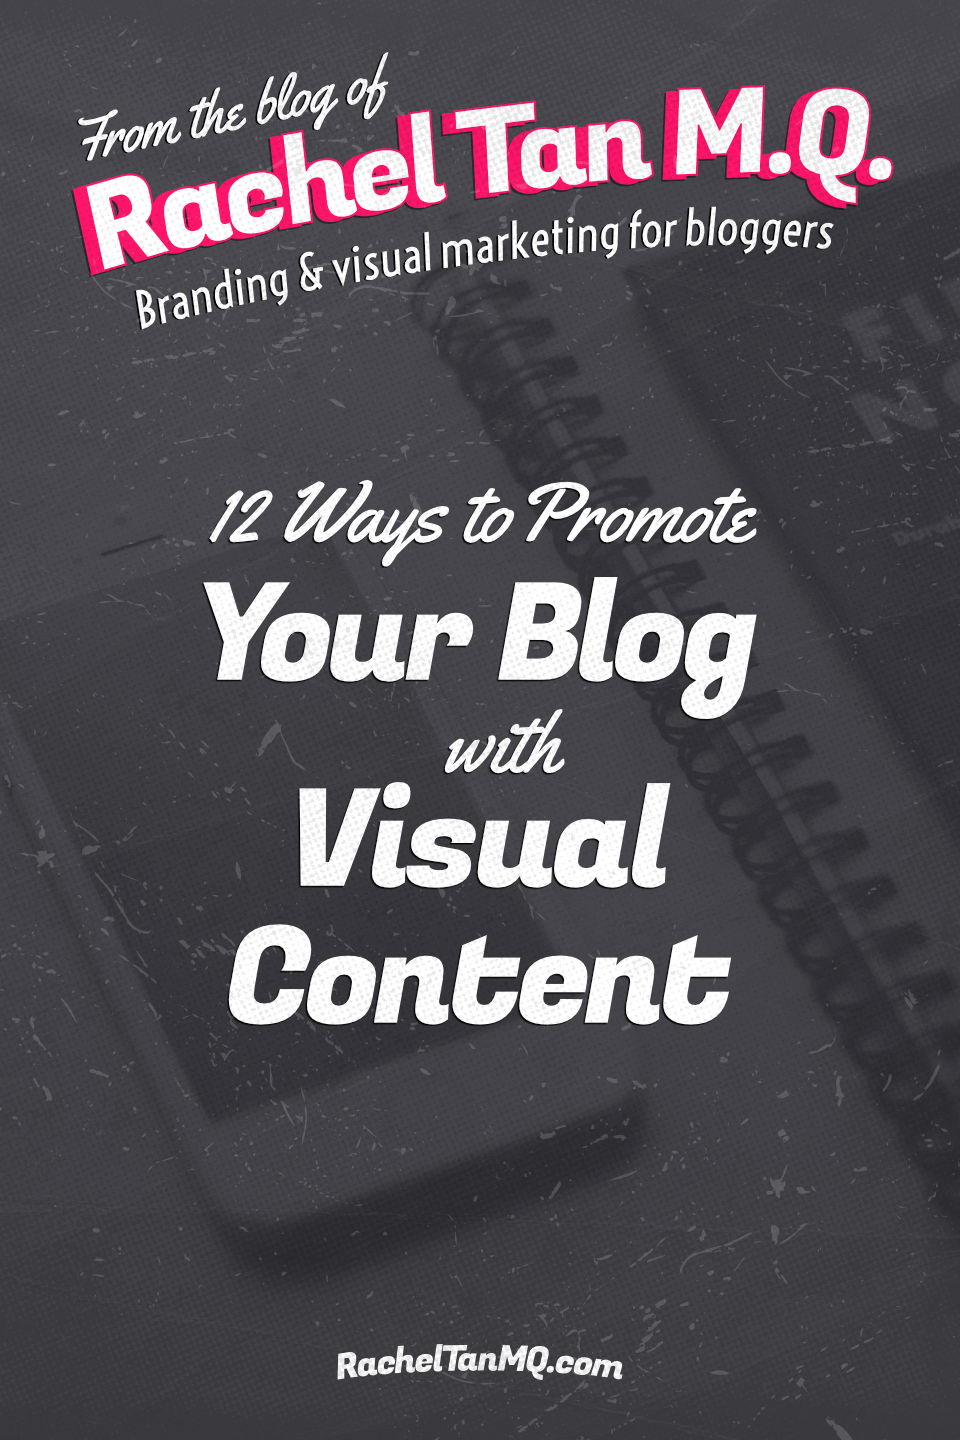 Increase your blog traffic with these 12 visual marketing ideas! • visual content marketing design | how to promote your blog on pinterest | how to promote your blog on instagram | pinterest tips for bloggers | instagram tips for bloggers | pinterest marketing | instagram marketing | blog graphics | social media graphics #visualmarketing #socialmediagraphics #bloggraphics #bloggingtips #pinteresttips #instagramtips #pinterestmarketing #instagrammarketing #socialmediamarketing